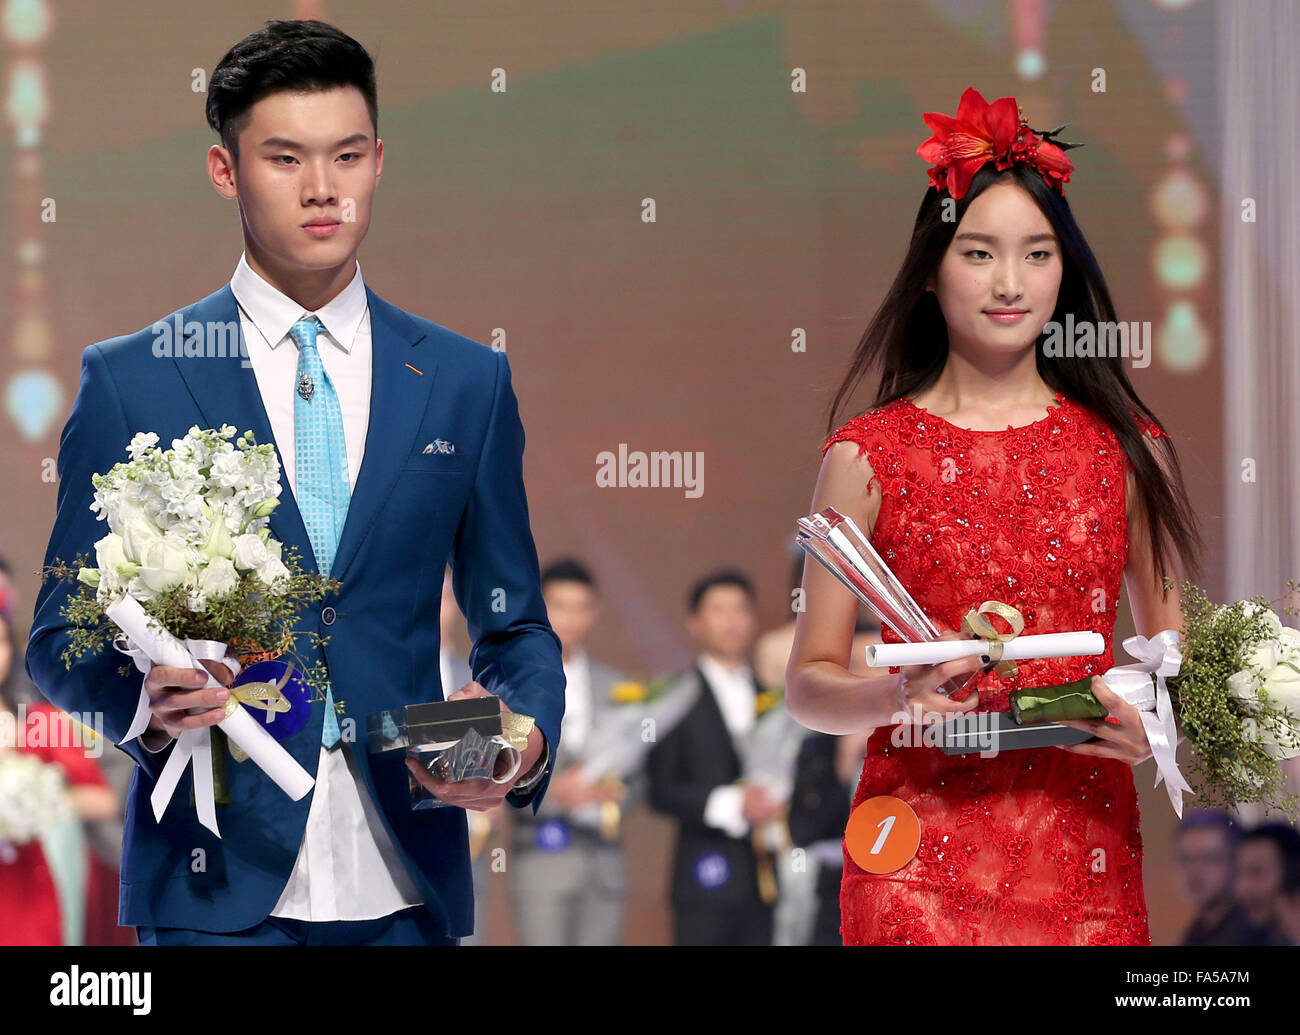 Beijing, China. 21st Dec, 2015. Winners are seen at the finals of 2015 Stellar New Face International Model Contest - Stock Image